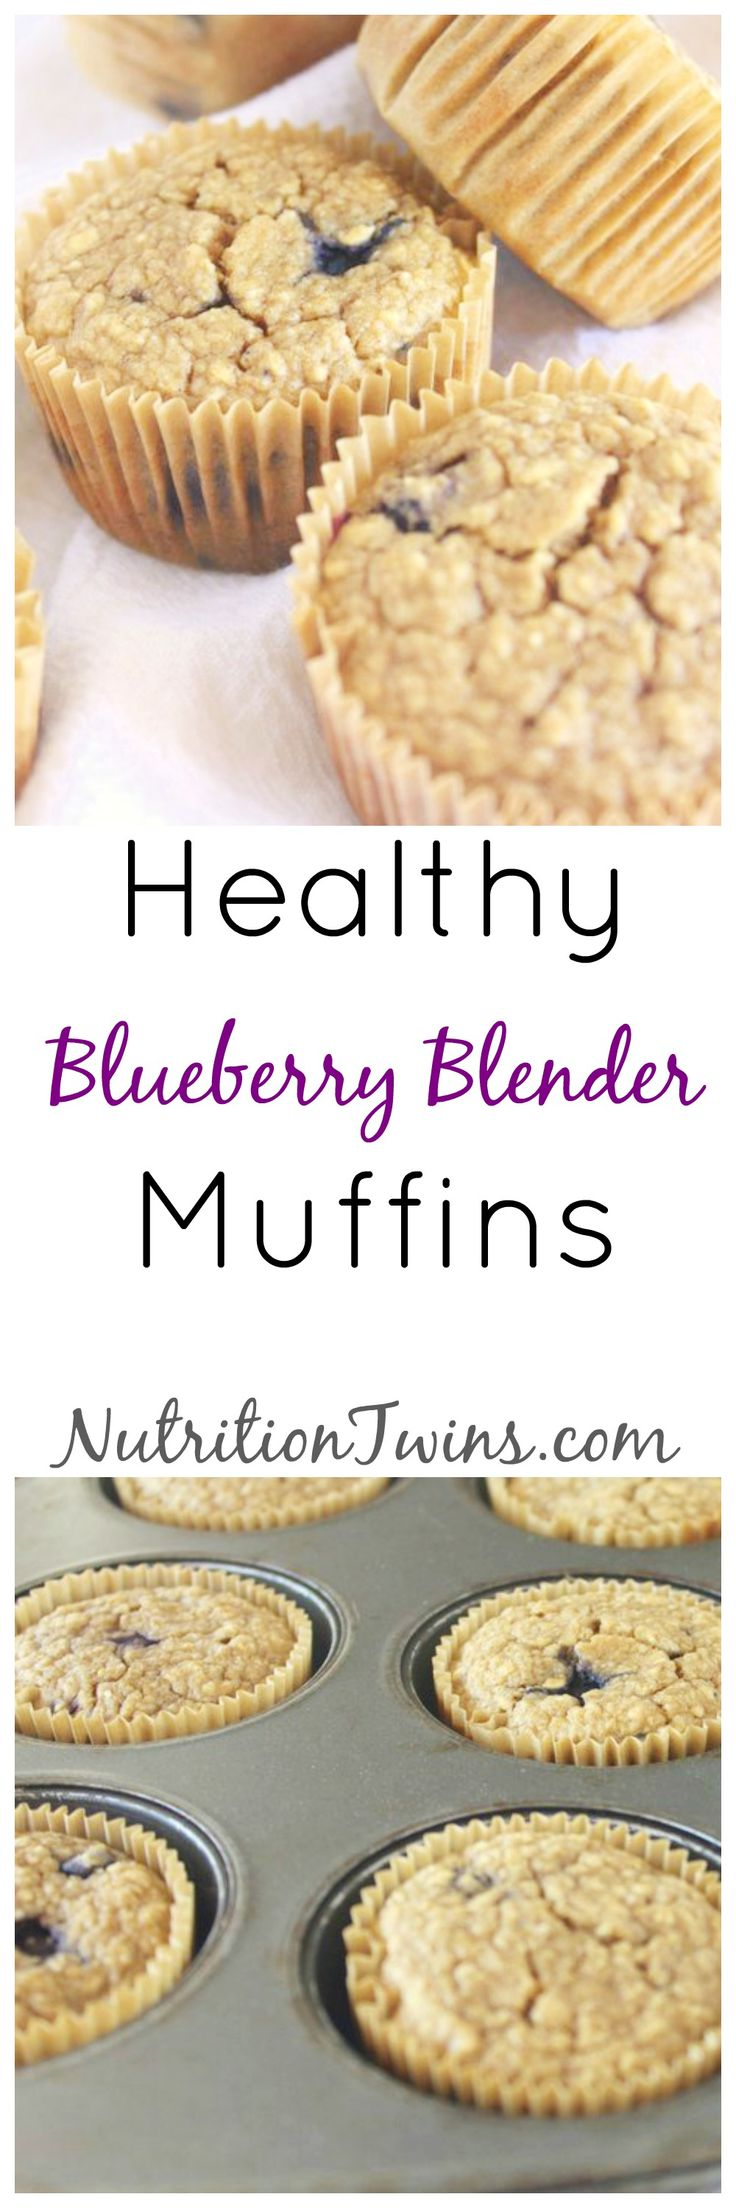 Lightened Up Blueberry Blender Muffins | Great Weight Loss Treat | Only 115 Calories | Healthy, made with oats, bananas | For MORE RECIPES, fitness & nutrition tips please SIGN UP for our FREE NEWSLETTER www.NutritionTwins.com